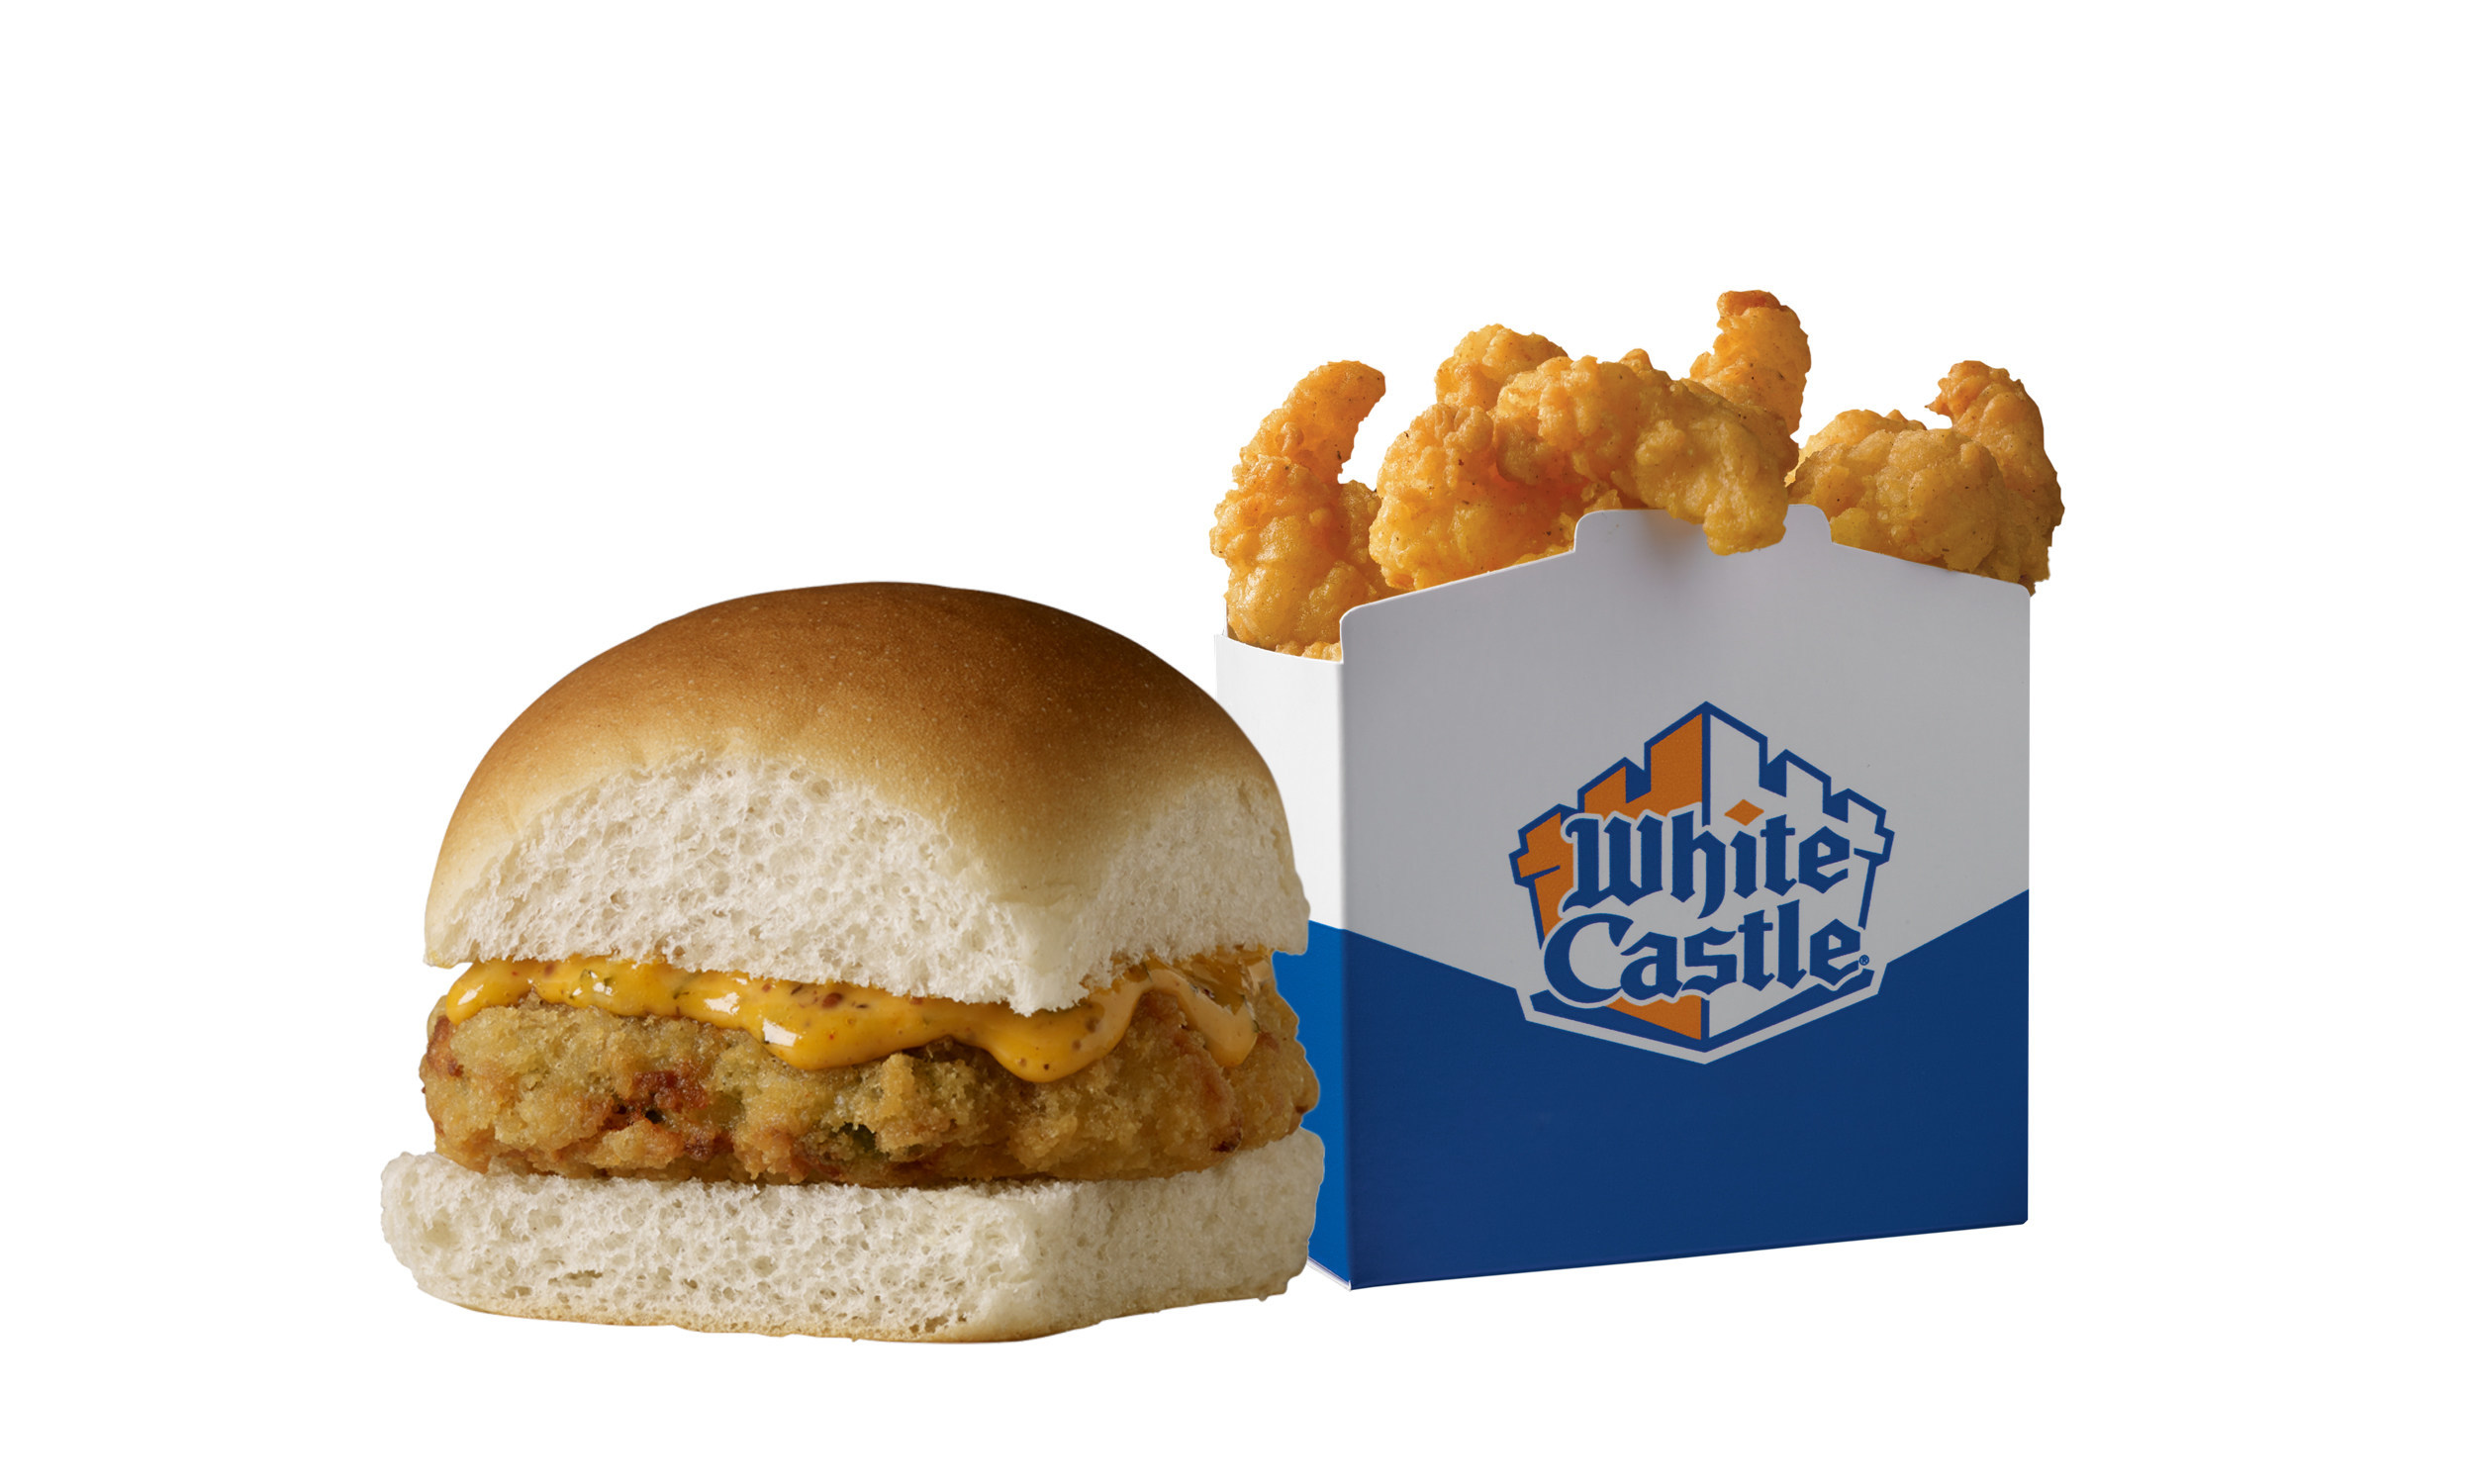 White Castle Brings Back Crab Cake Sliders For Lent After Cutting it From Menu in 2020